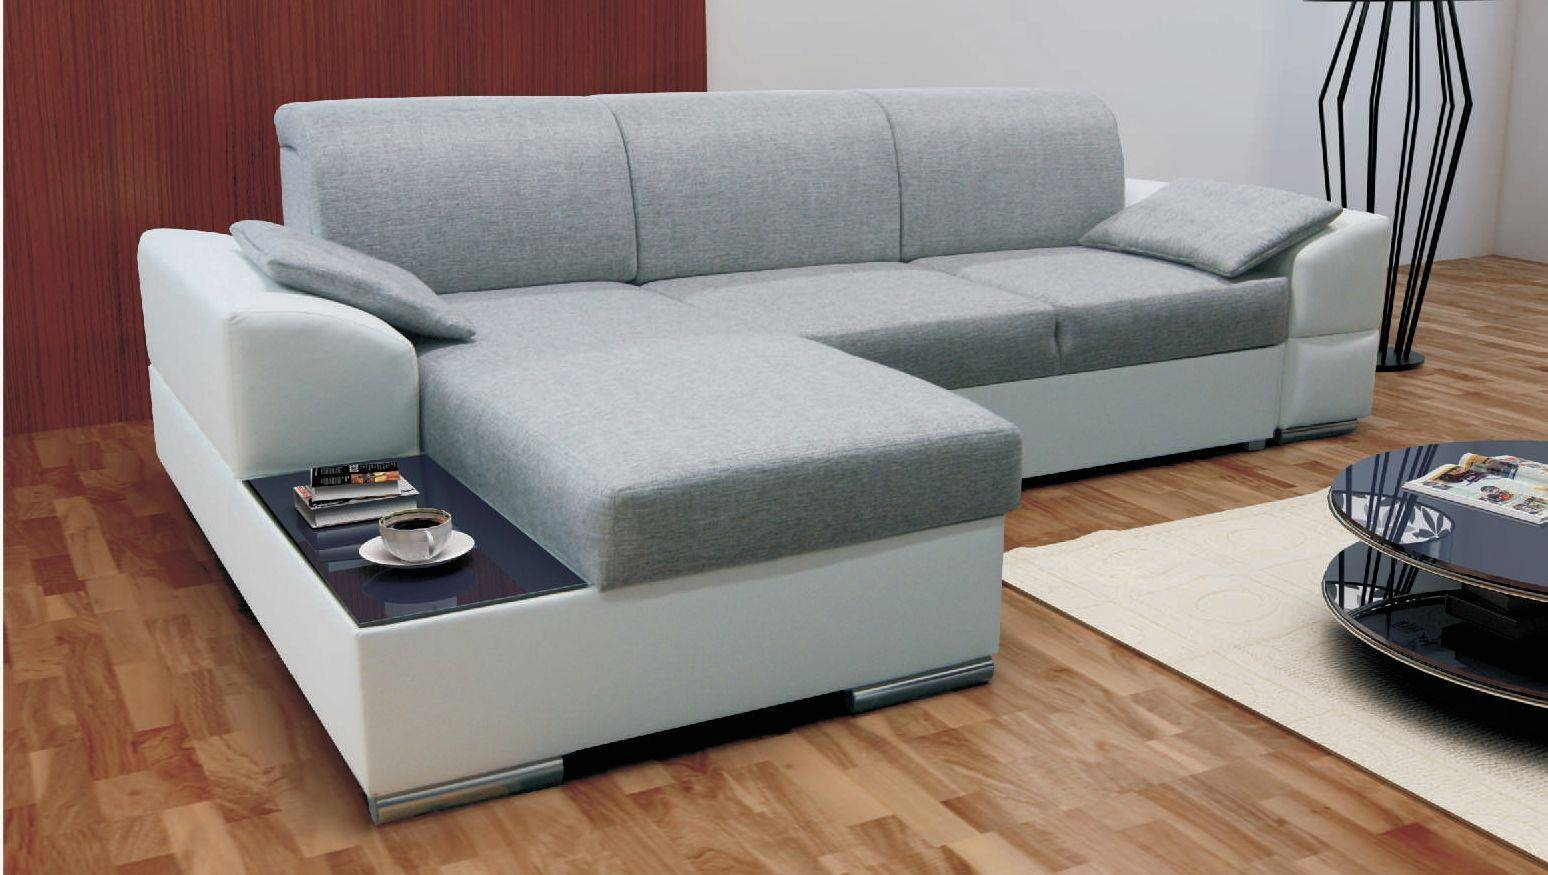 Sofas Center : Friheten Corner Sofa With Storage Skiftebo Dark with regard to Ikea Corner Sofa Bed With Storage (Image 22 of 25)